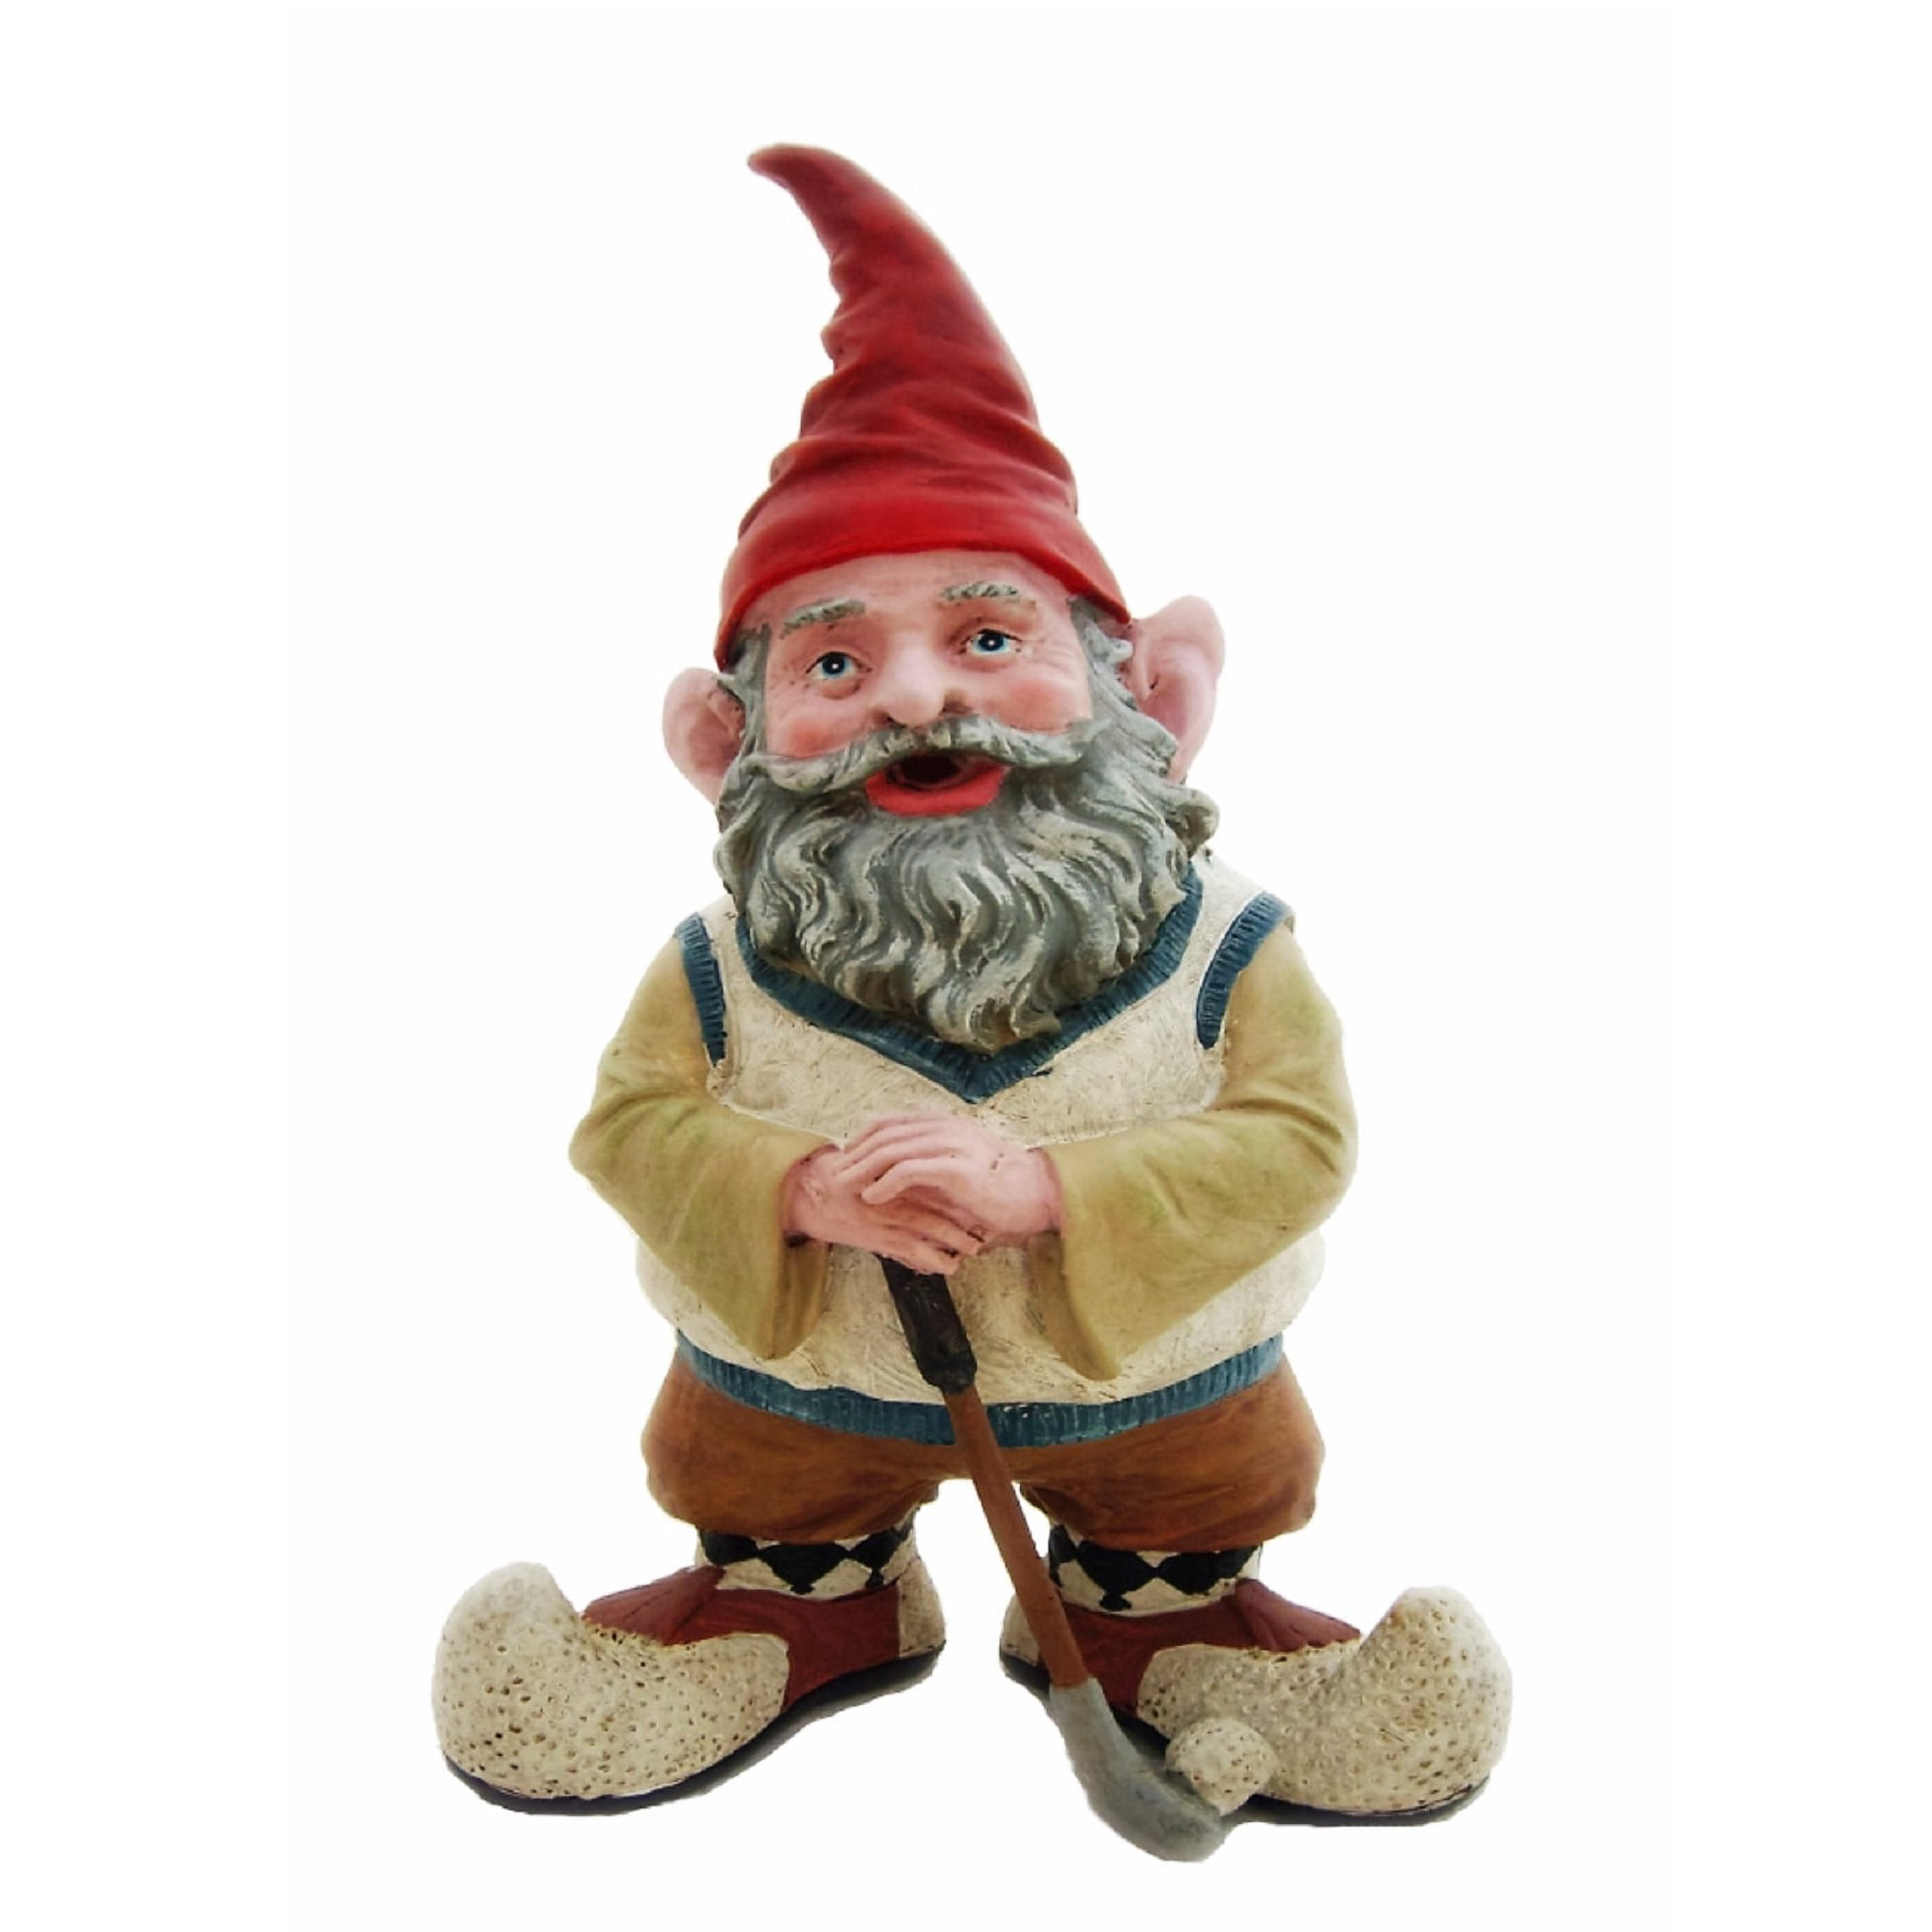 Nowaday Gnomes Greg the Golfer Gnome Holding a Golf Club & Golf Ball Home & Garden Gnome... by GSI Homestyles